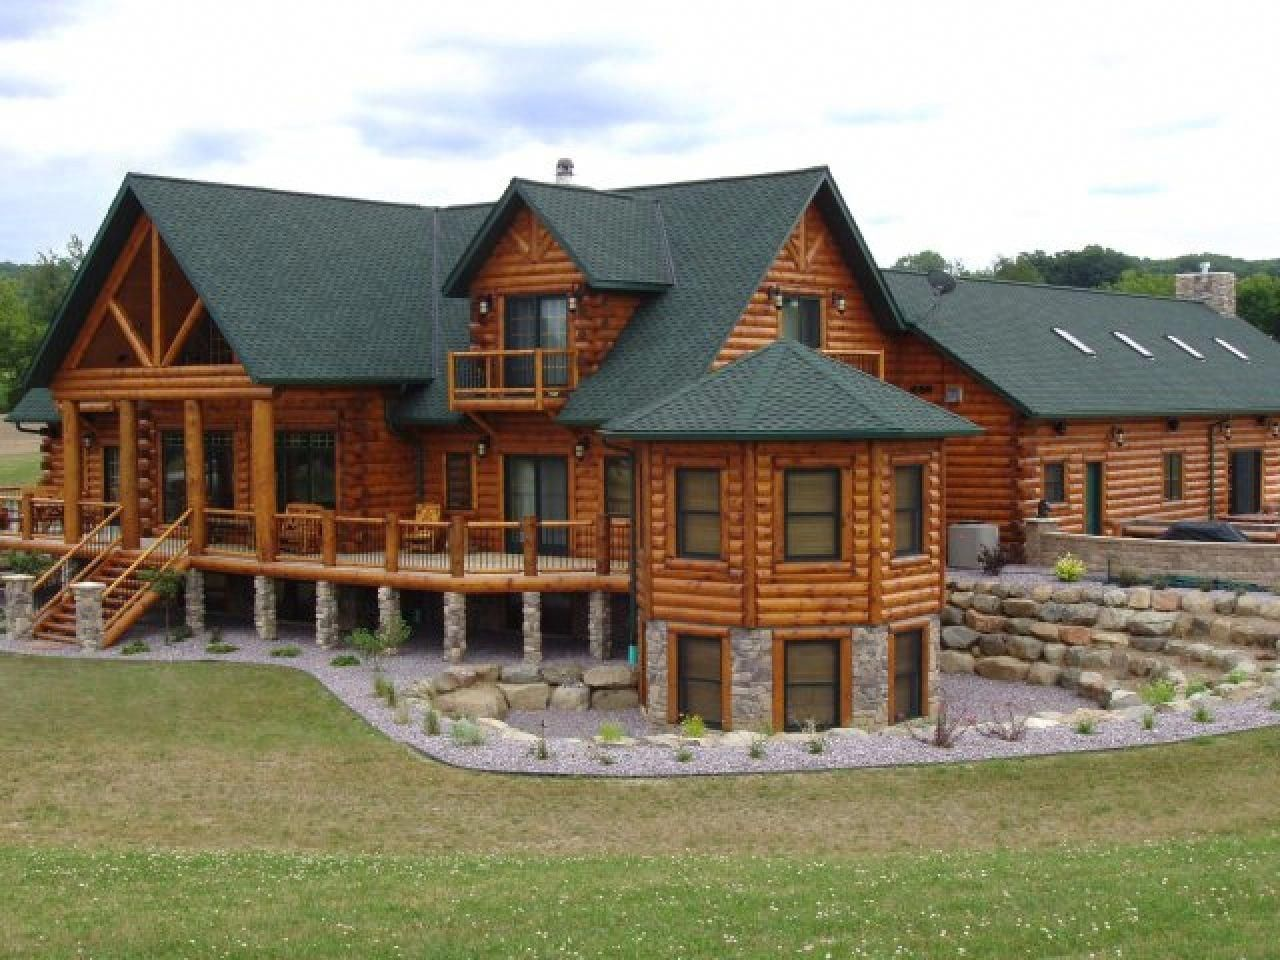 Luxury Log Home Designs Luxury Custom Log Homes Lrg 1515110ae1e25be3 Rusticloft Log Home Plans Log Homes Log Homes Exterior